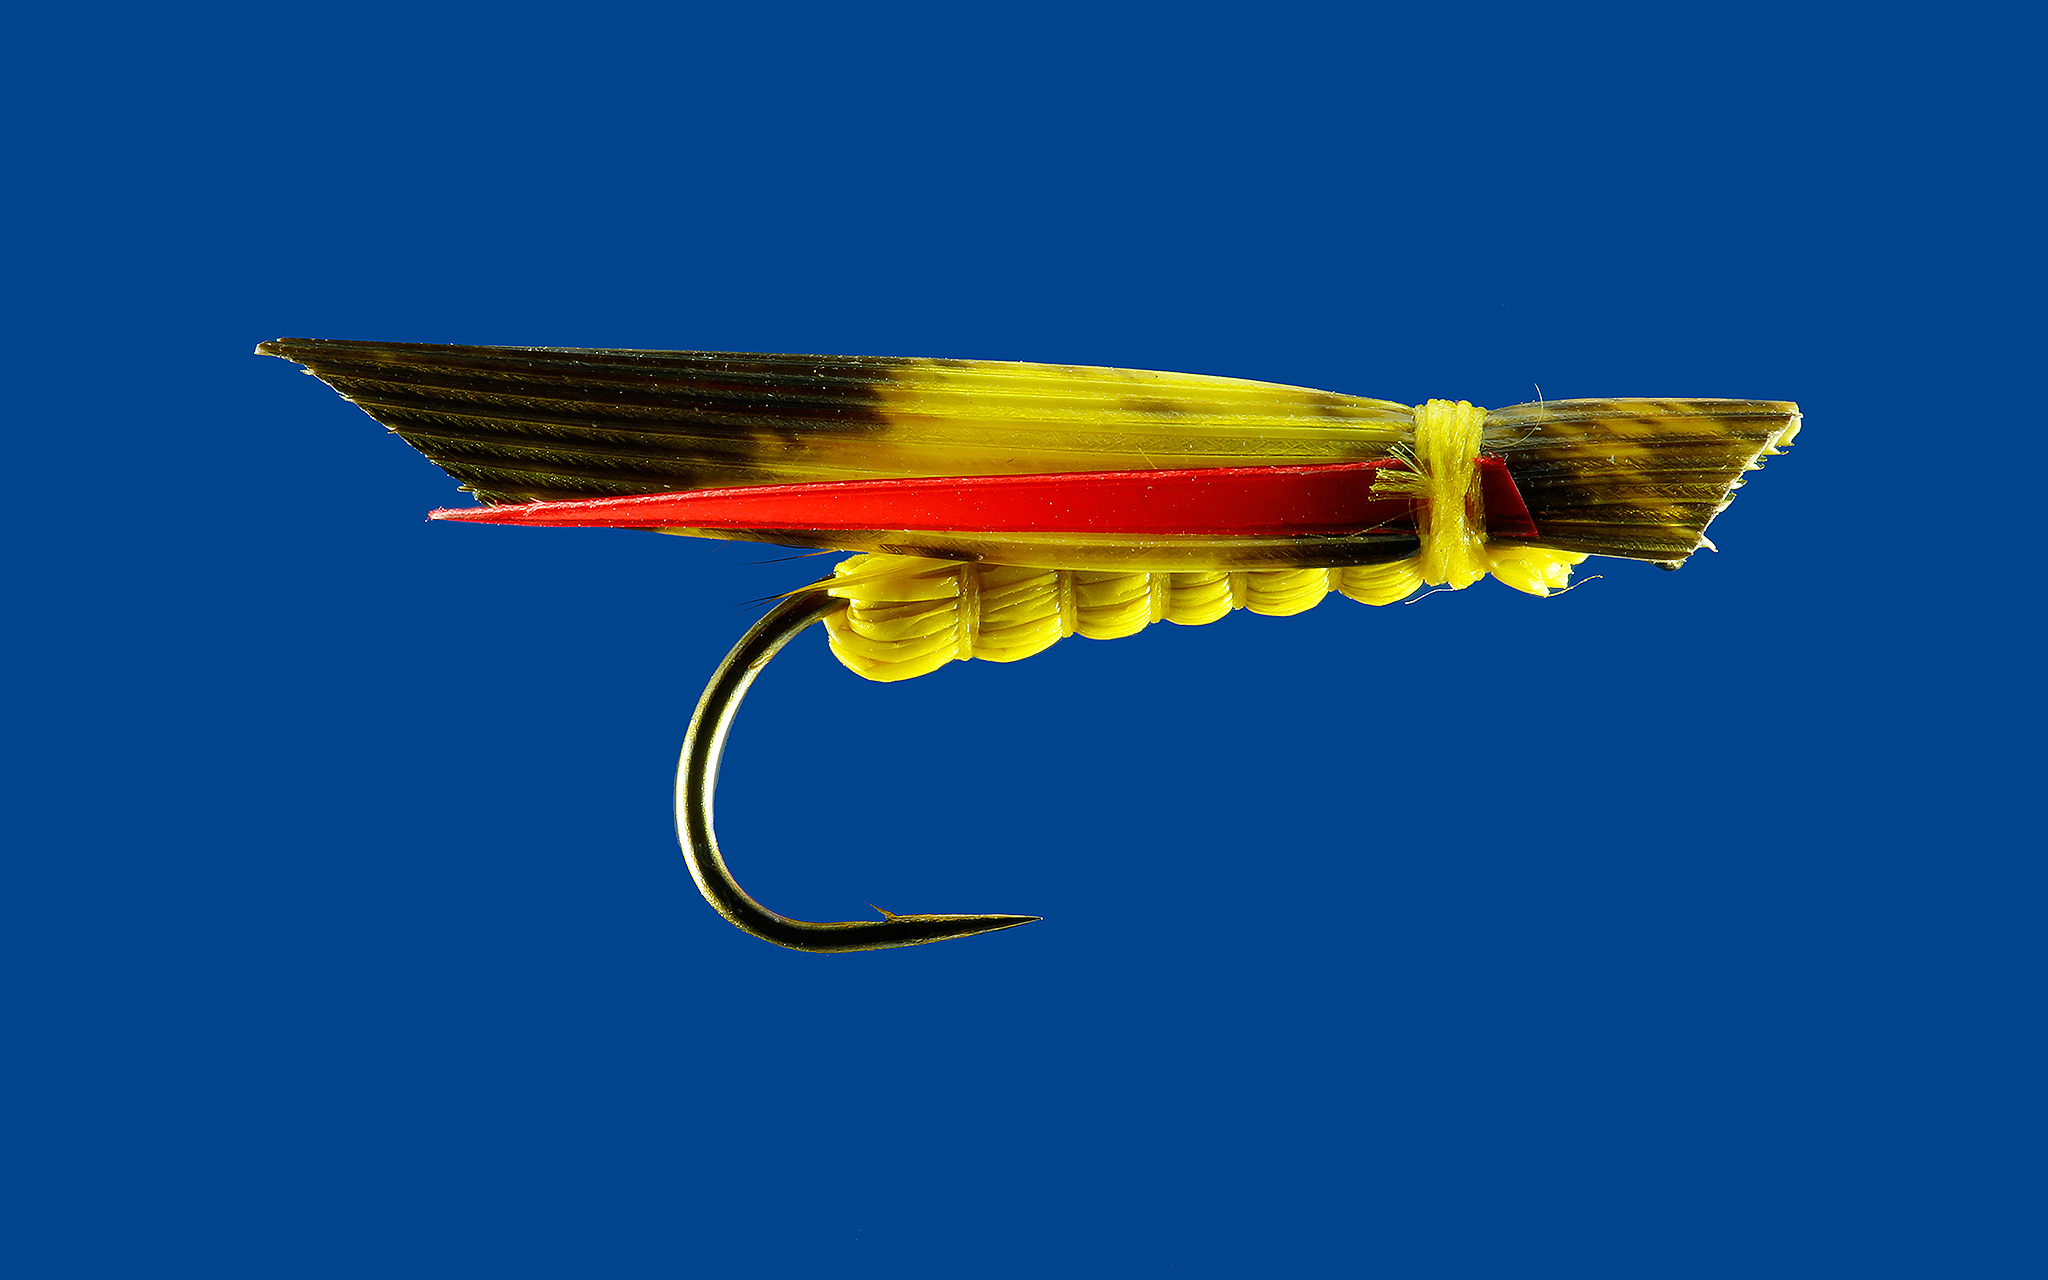 Al's Yellow Hopper